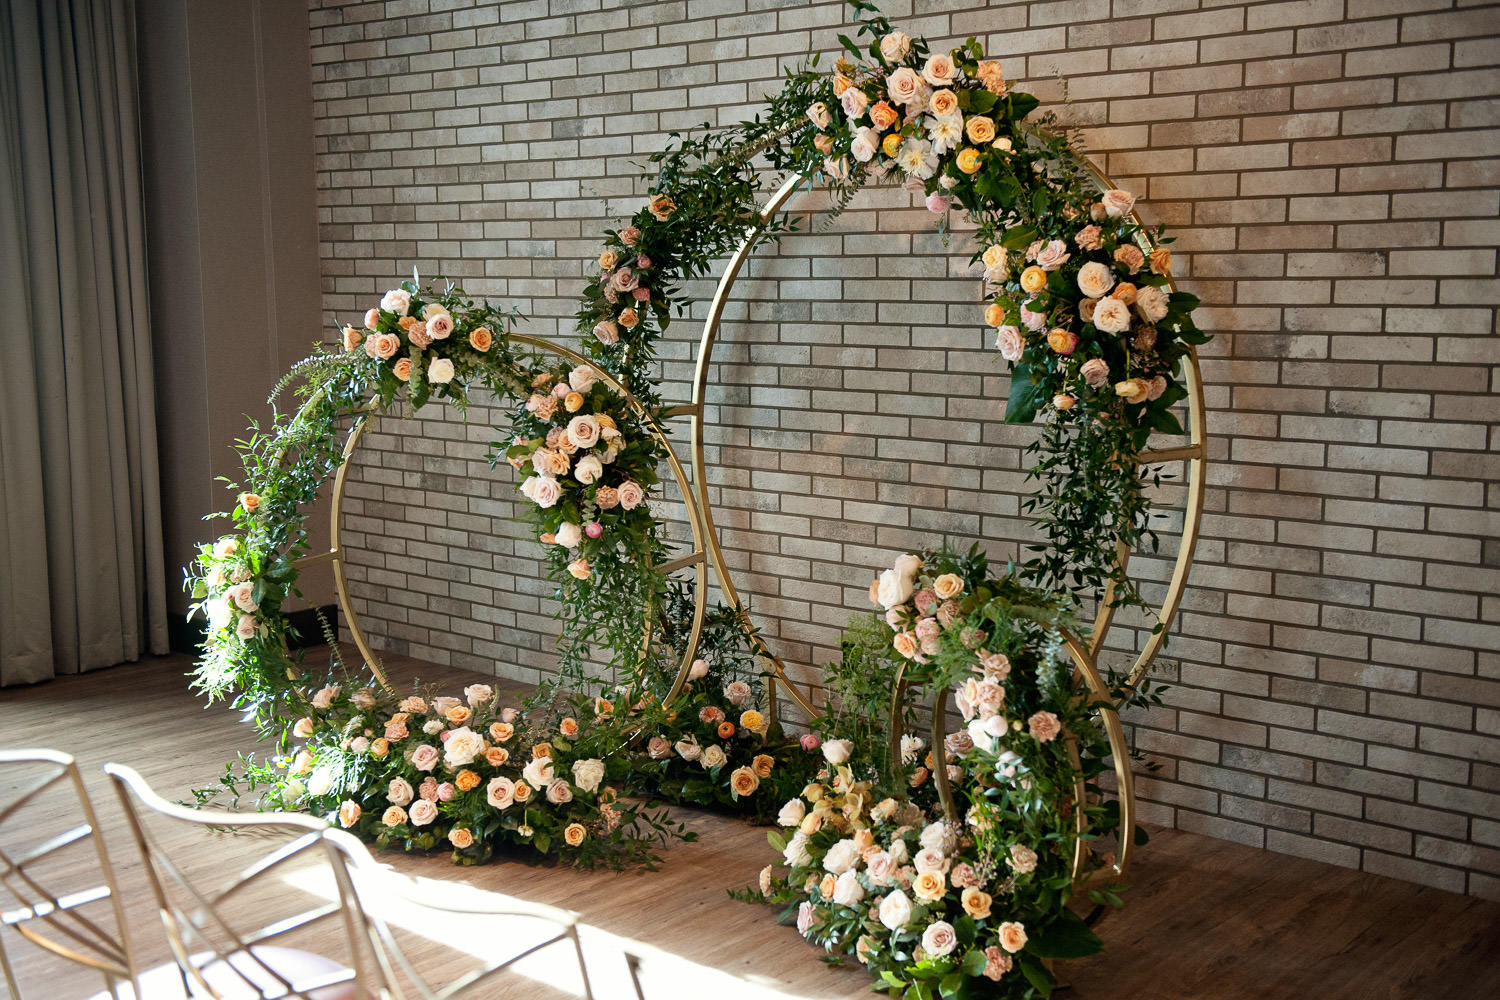 three circular ceremony arches by Flowers by Janie captured by Tara Whittaker Photography